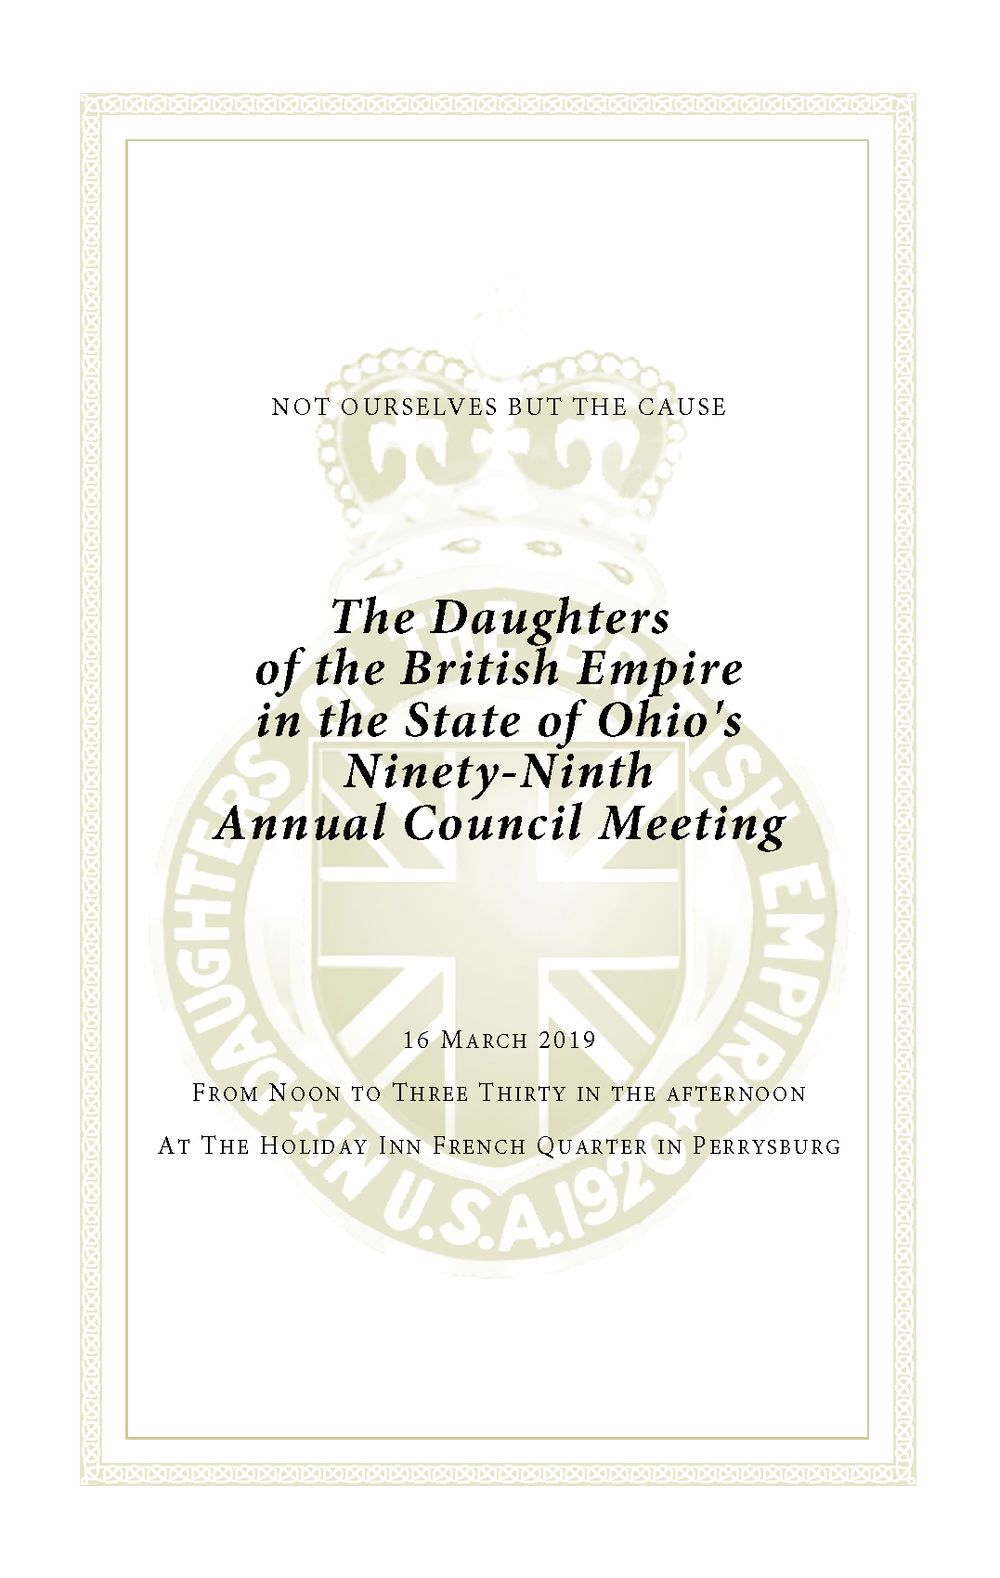 Annual Council Meeting Program_Page_1.png